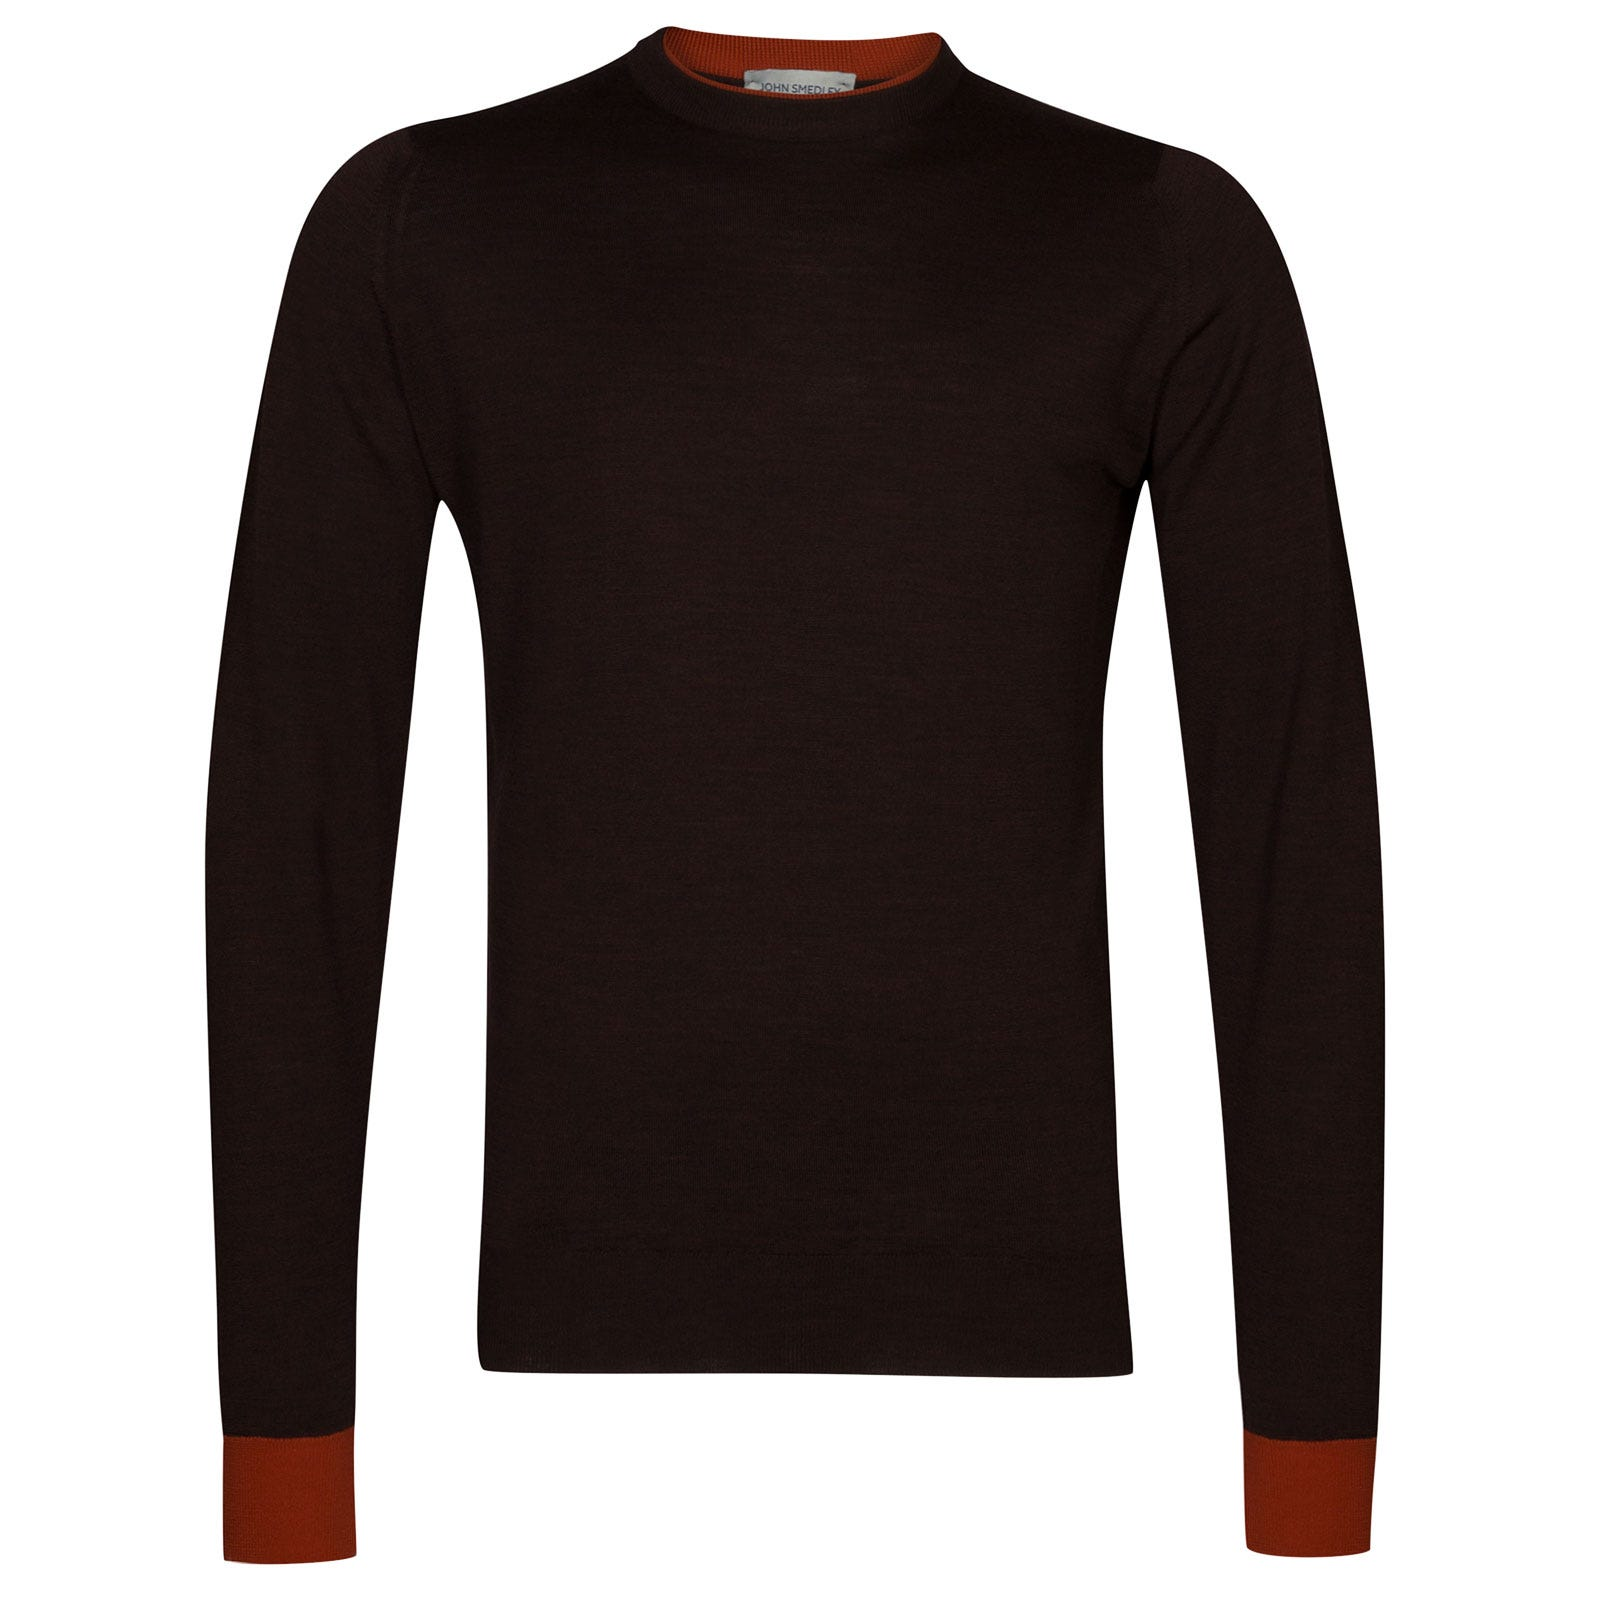 John Smedley kenn Merino Wool Pullover in Chestnut/Flare Orange-L